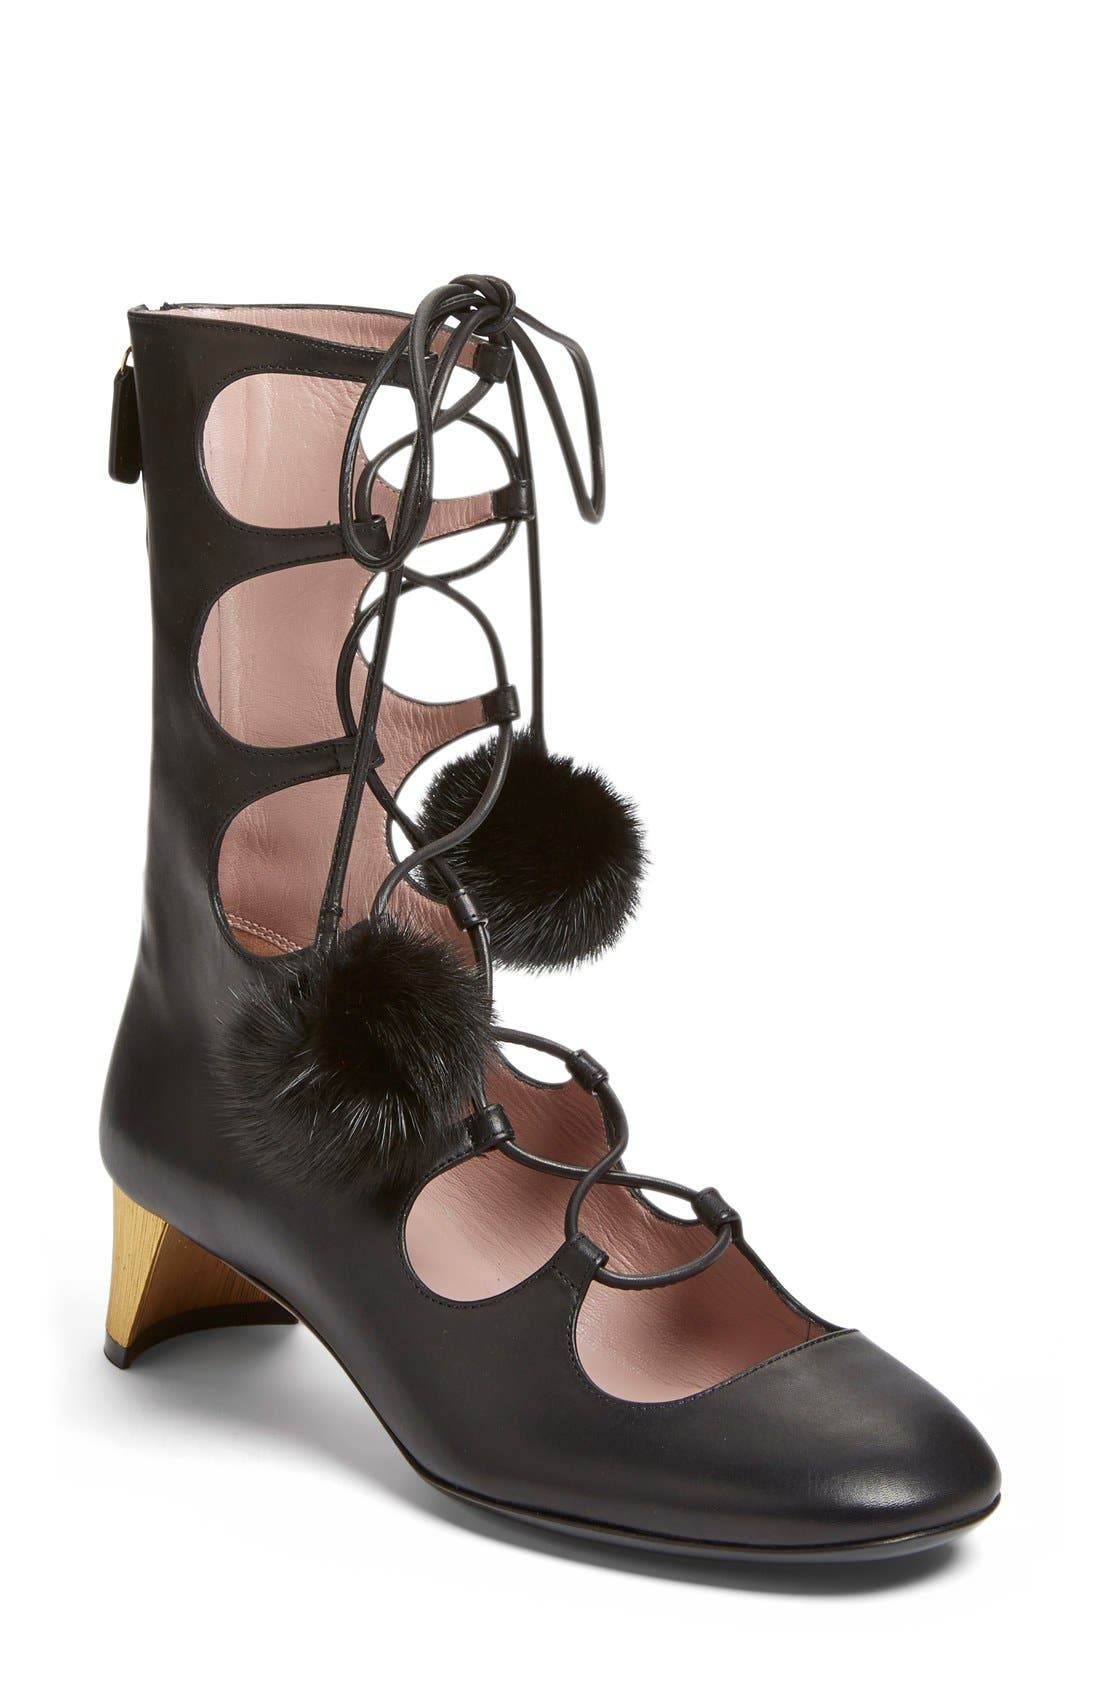 Main Image - Gucci 'Heloise' Lace-Up Boot (Women)